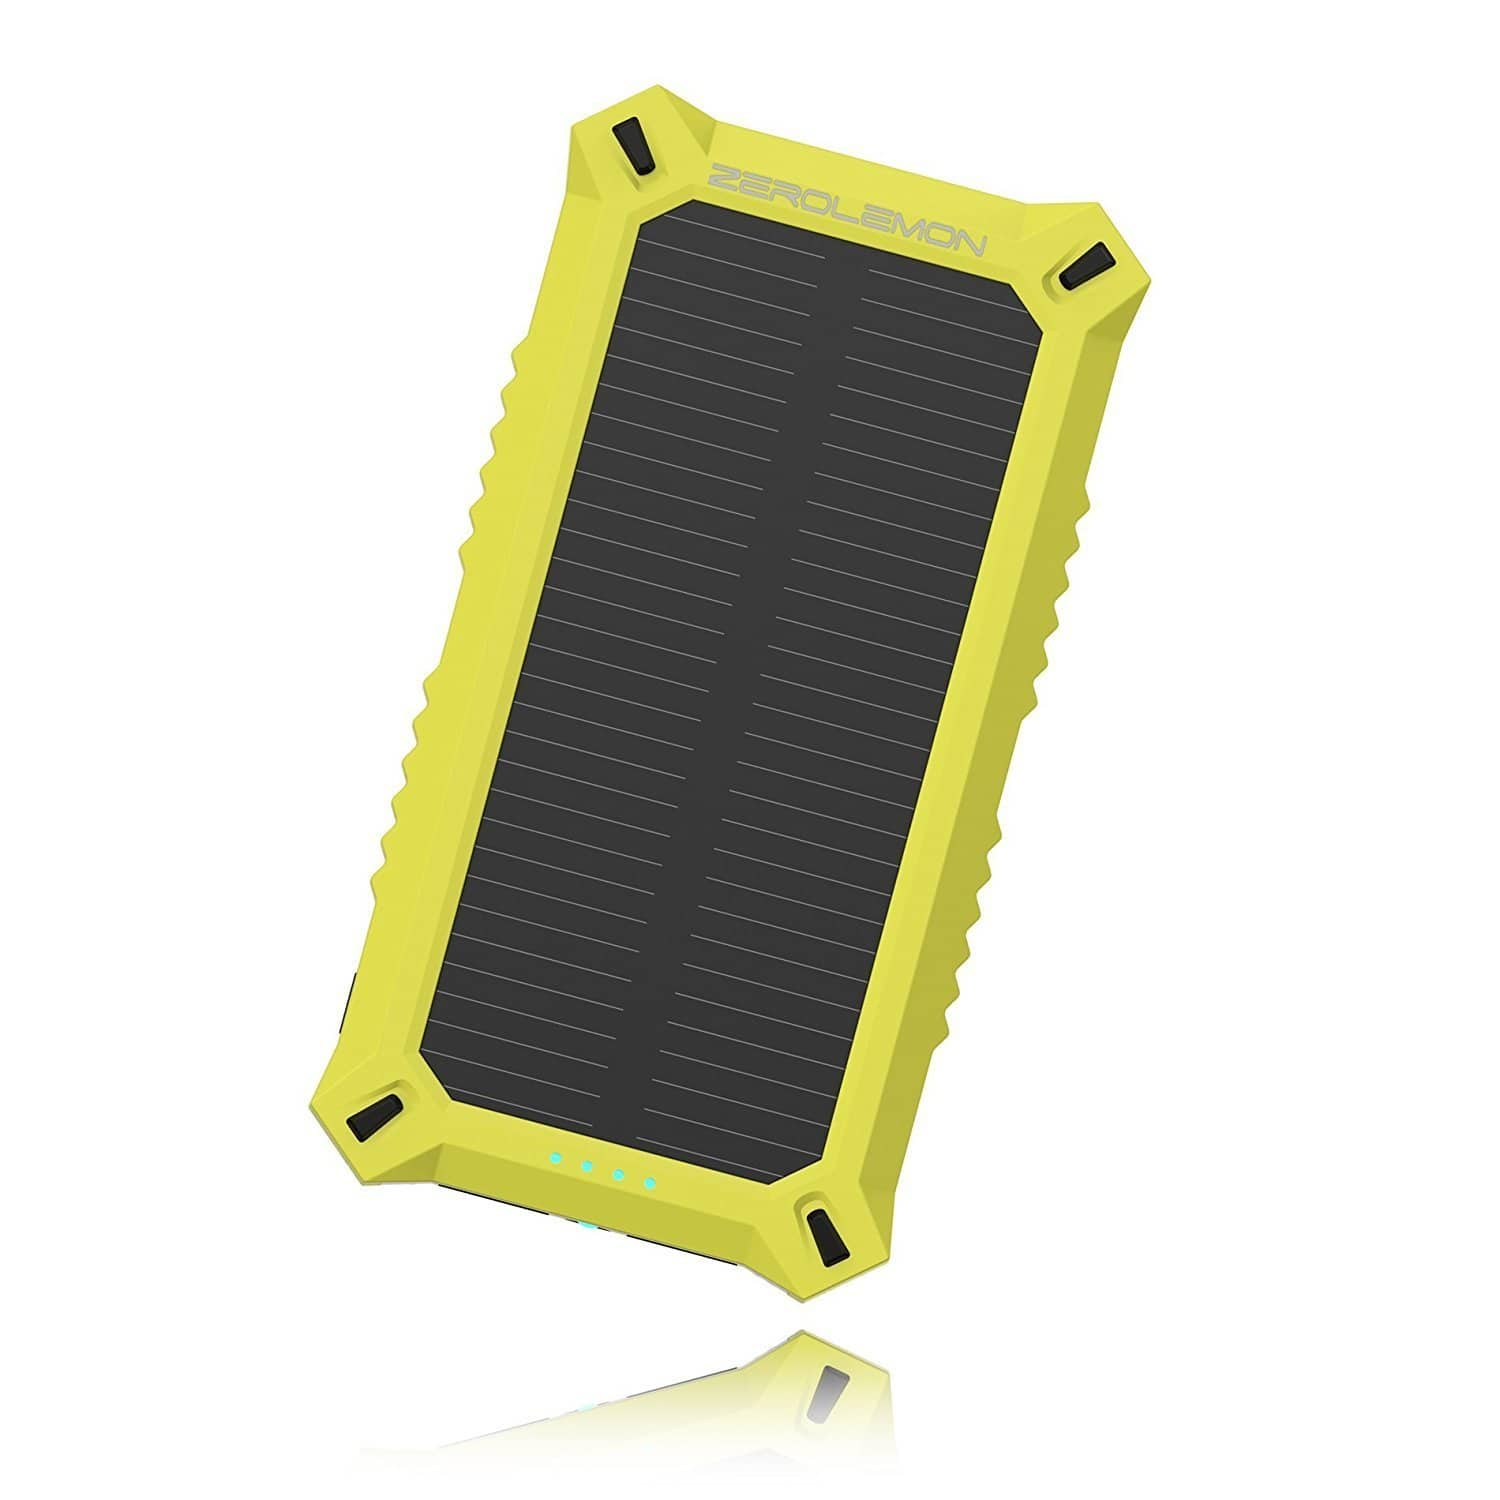 8000mAh Solar Charger 50% off $9.99,26800mAh ZeroLemon Solar Charger 30% off $34.99 AC+F/S @Amazon